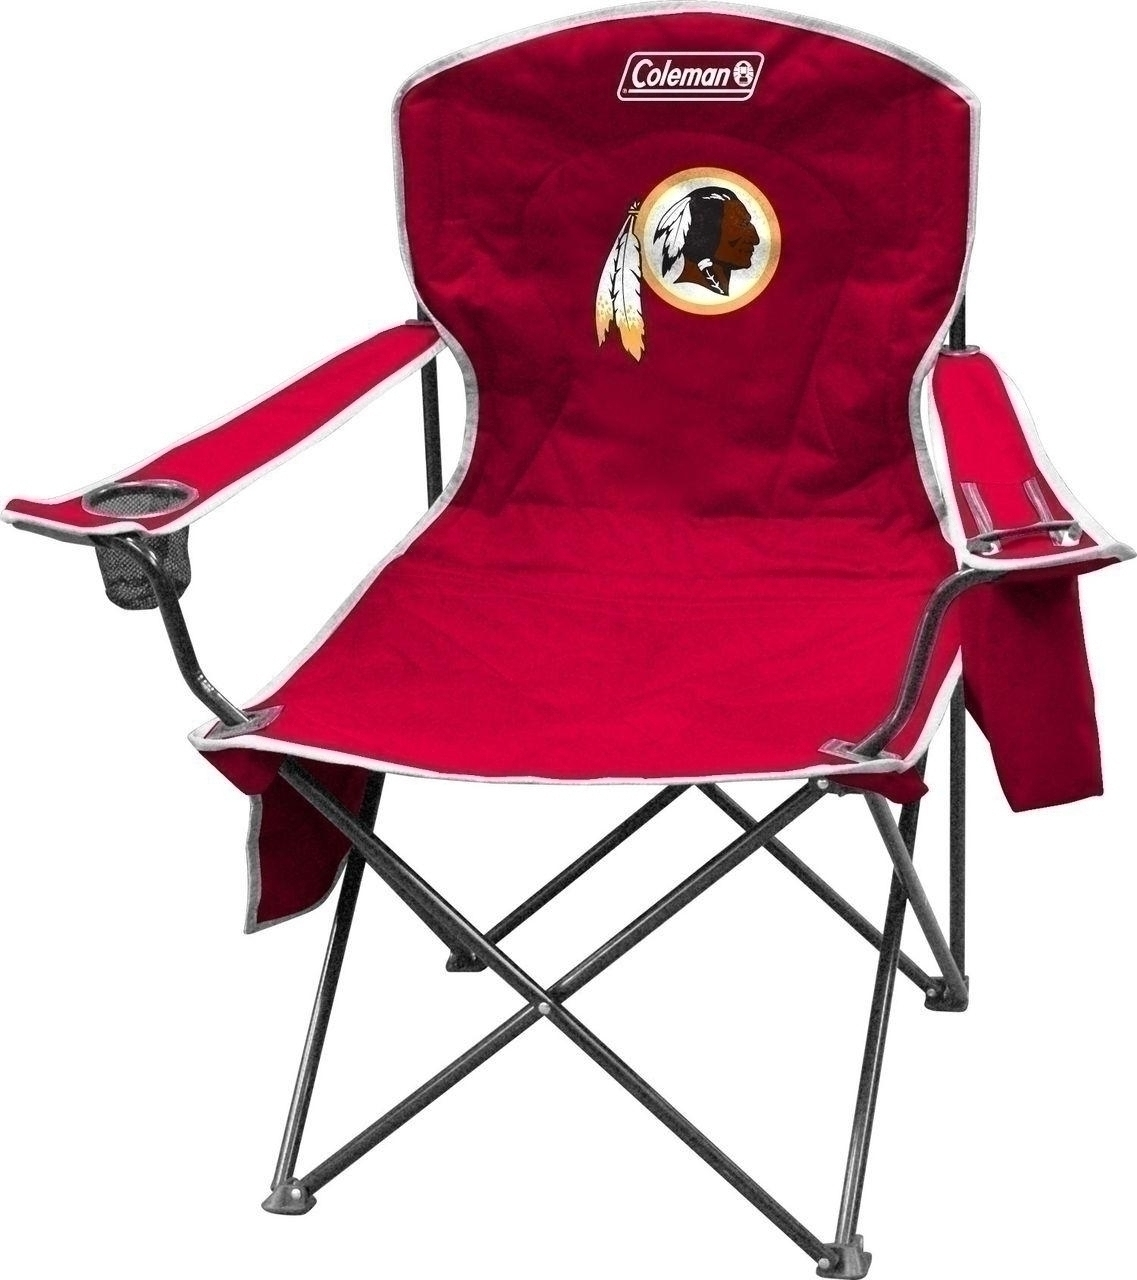 Washington Redskins Xl Cooler Quad Chair - 1509927729 - Nfl Football Washington Redskins Other 1509927729